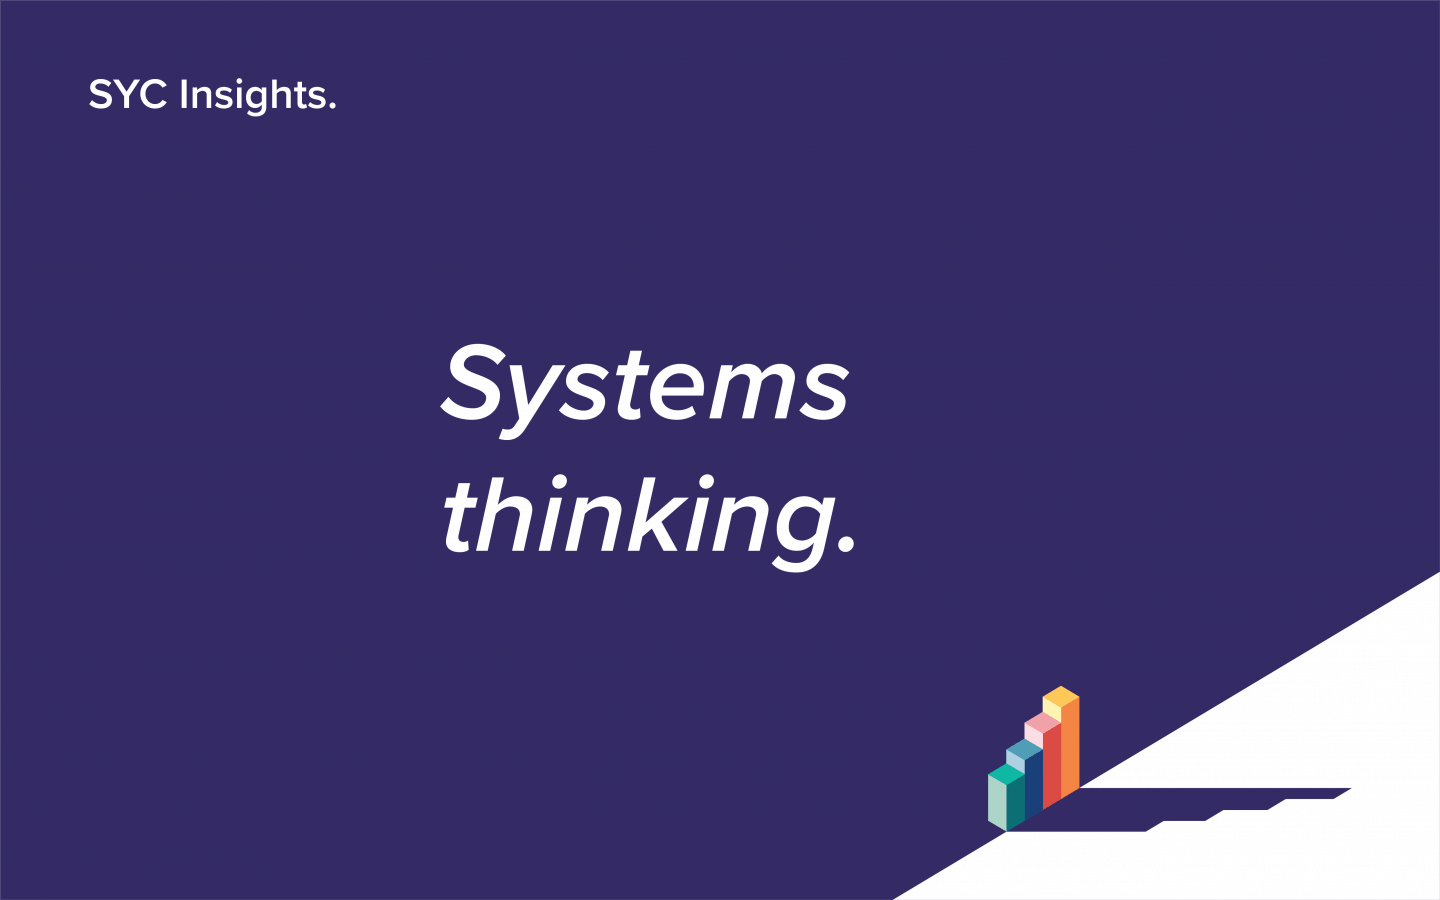 cover image SYC Insights Systems Thinking